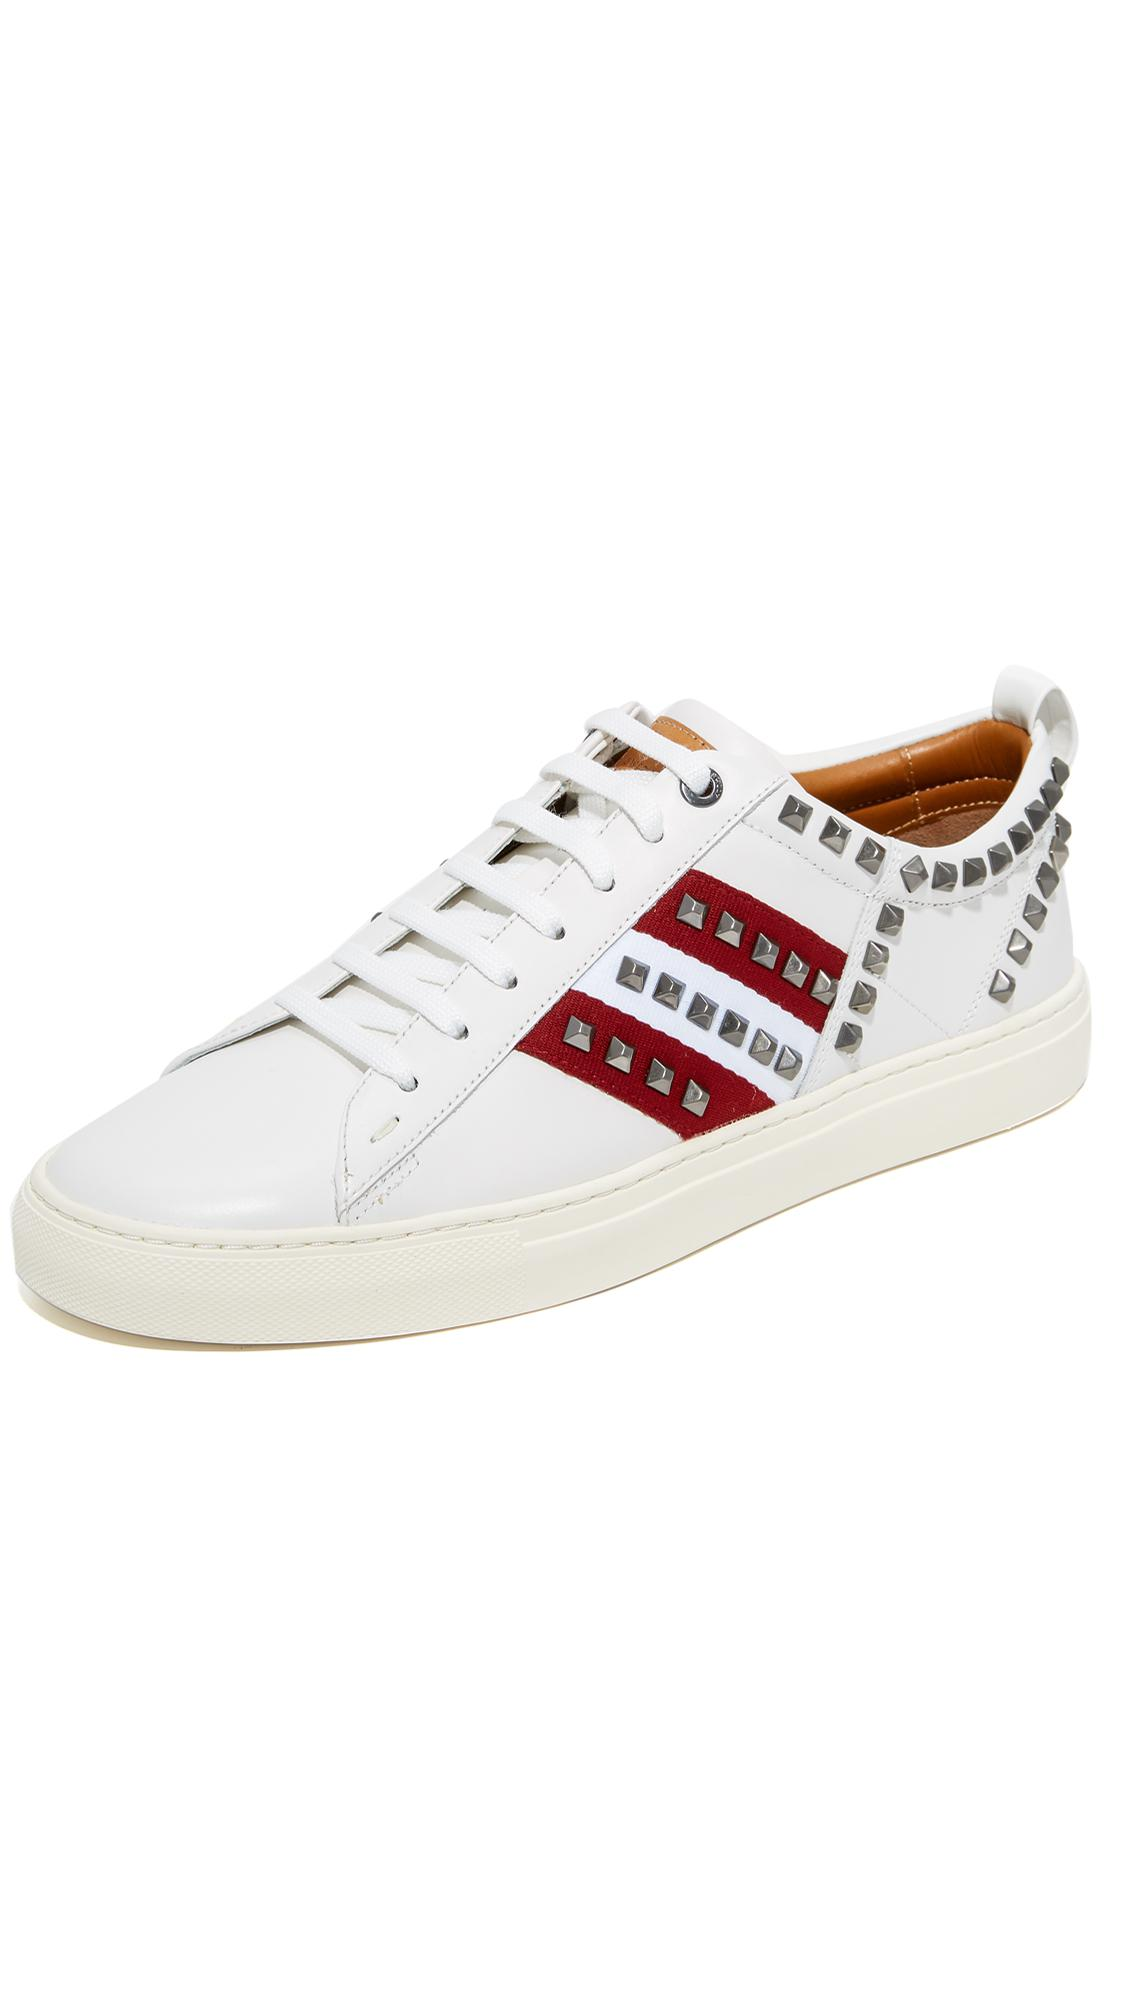 BallySTRIPES STUDDED LEATHER SNEAKERS